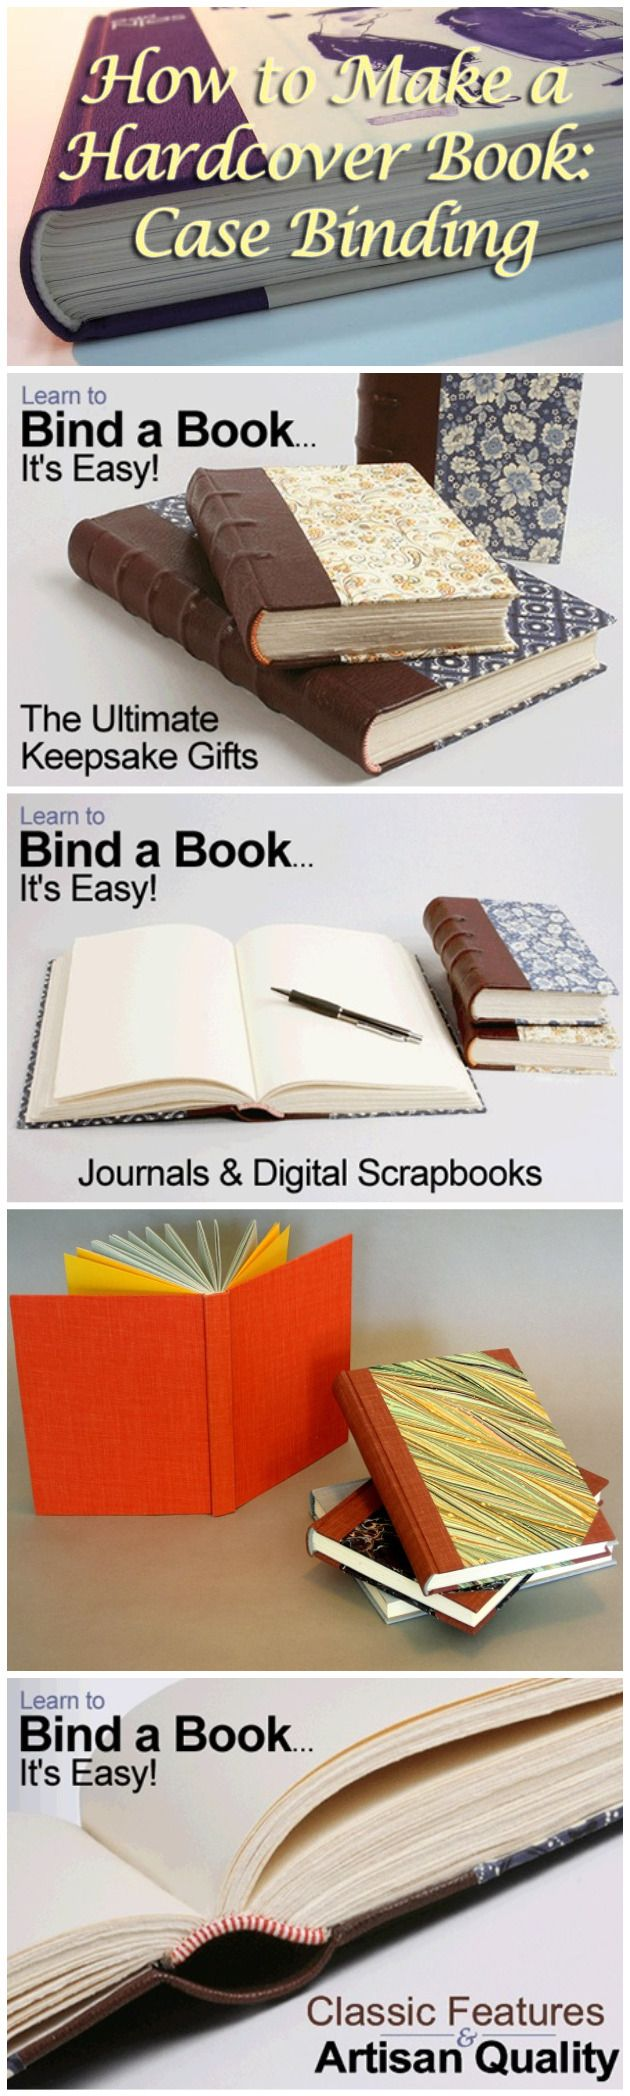 How To Make A Hardcover Book ~ Best images about book binding on pinterest